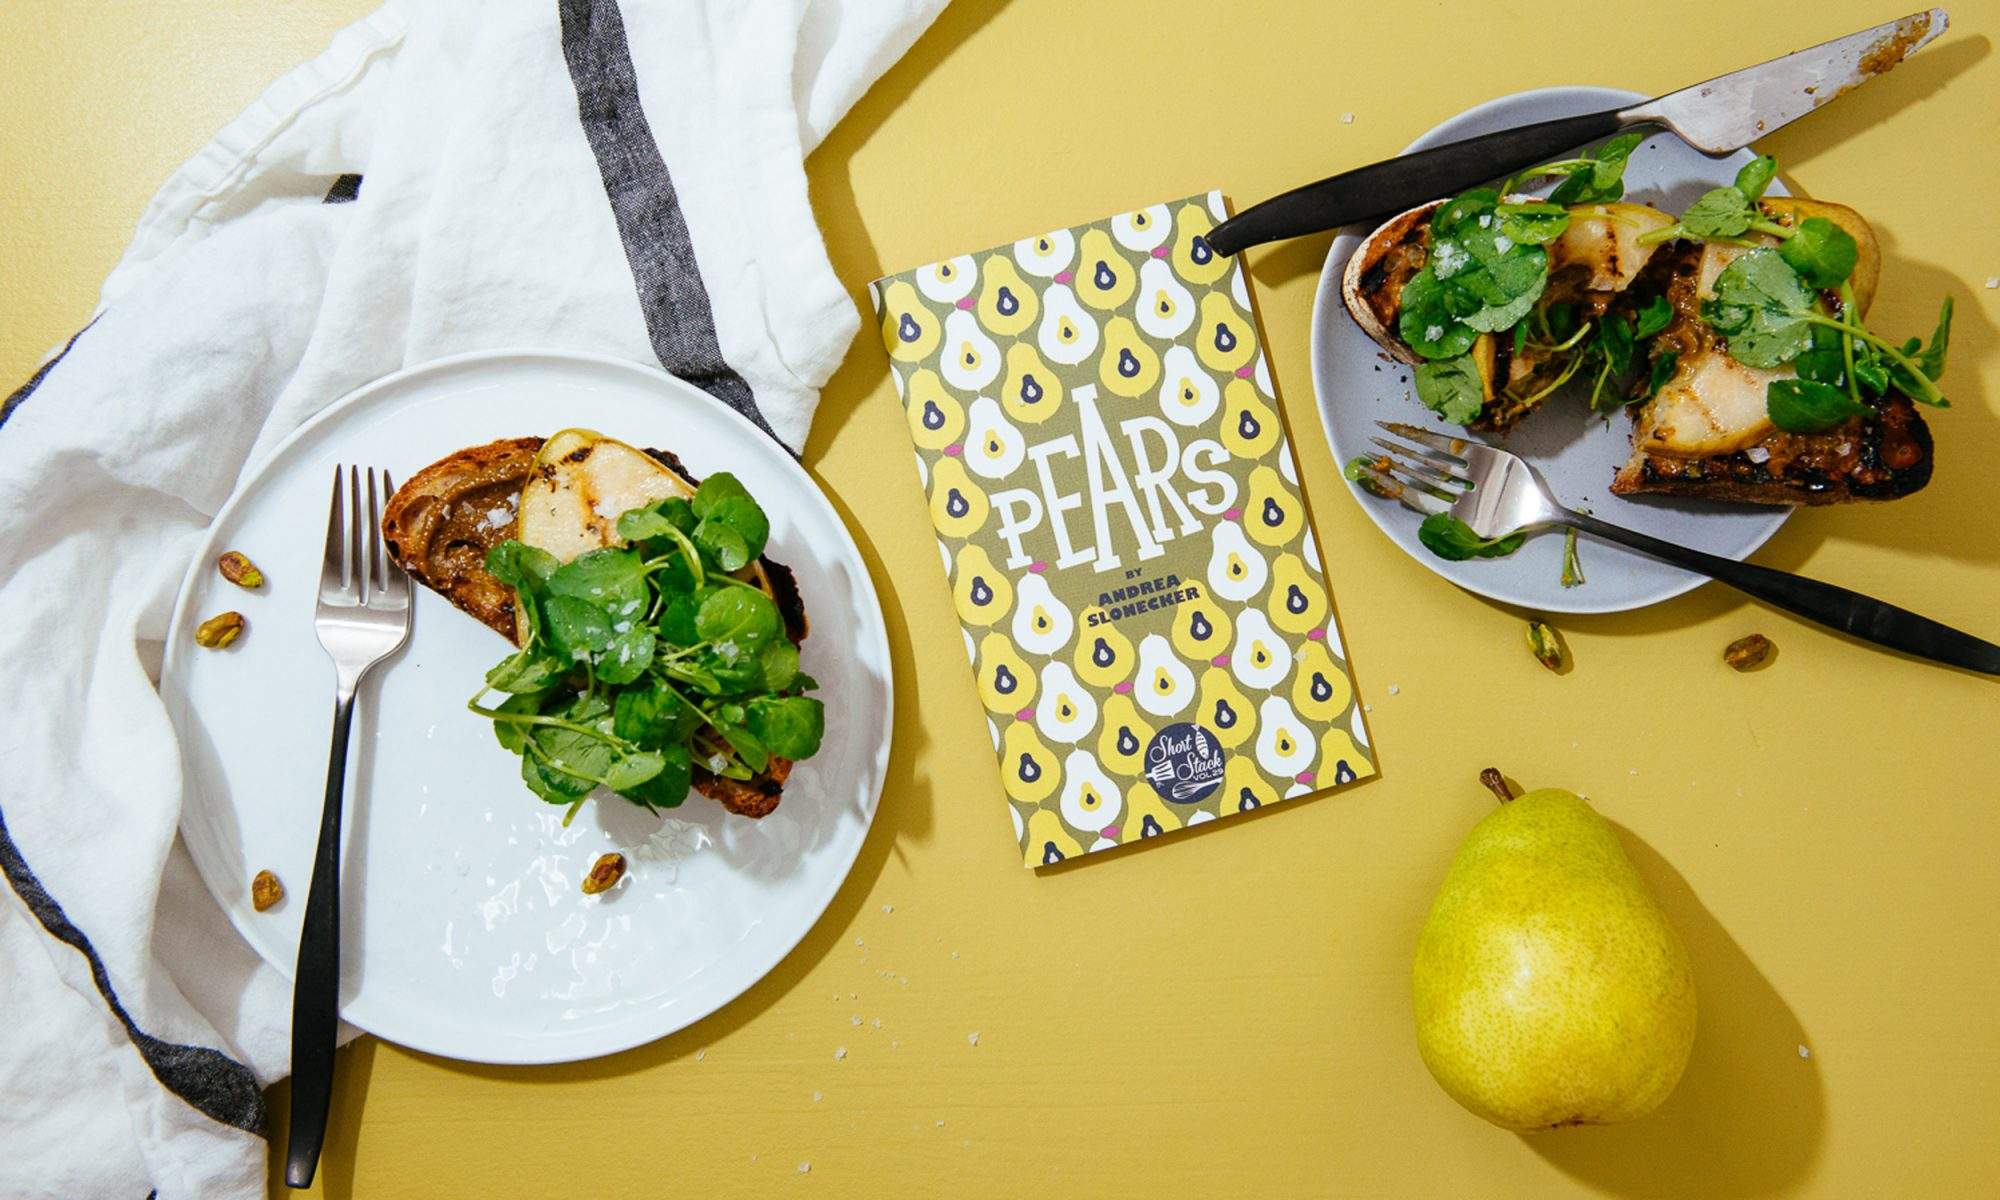 Grilled Pear Toasts with Amazing Pistachio Butter